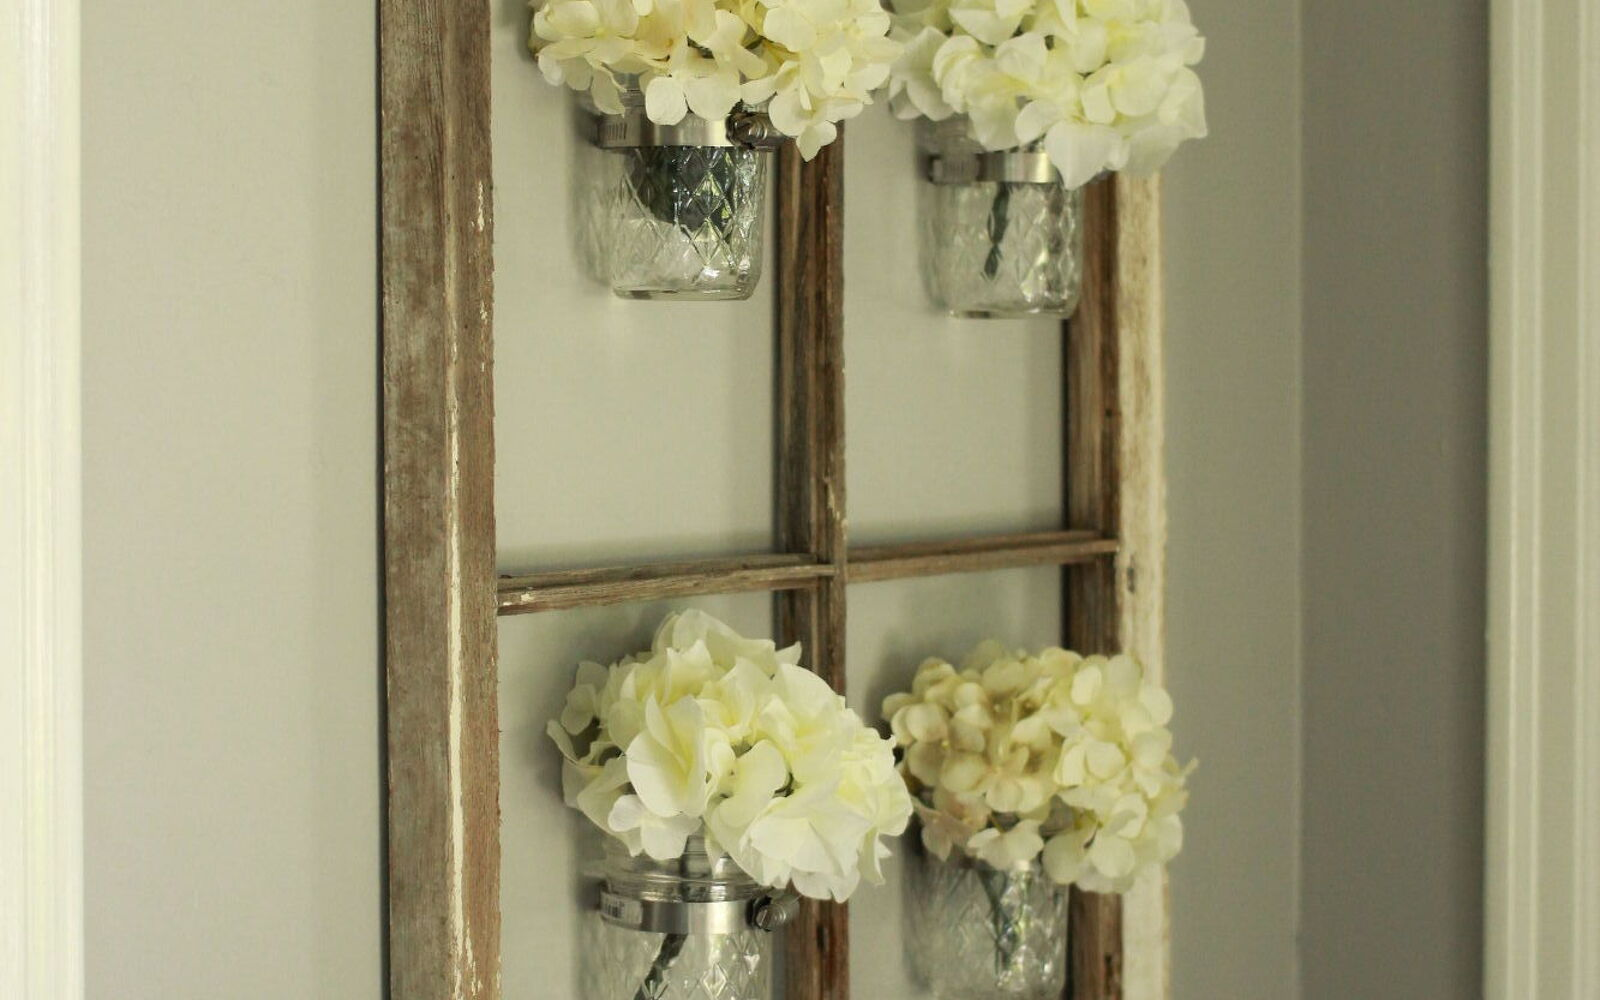 s 31 update ideas to make your kitchen look fabulous, Create a rustic chic mason jar wall art